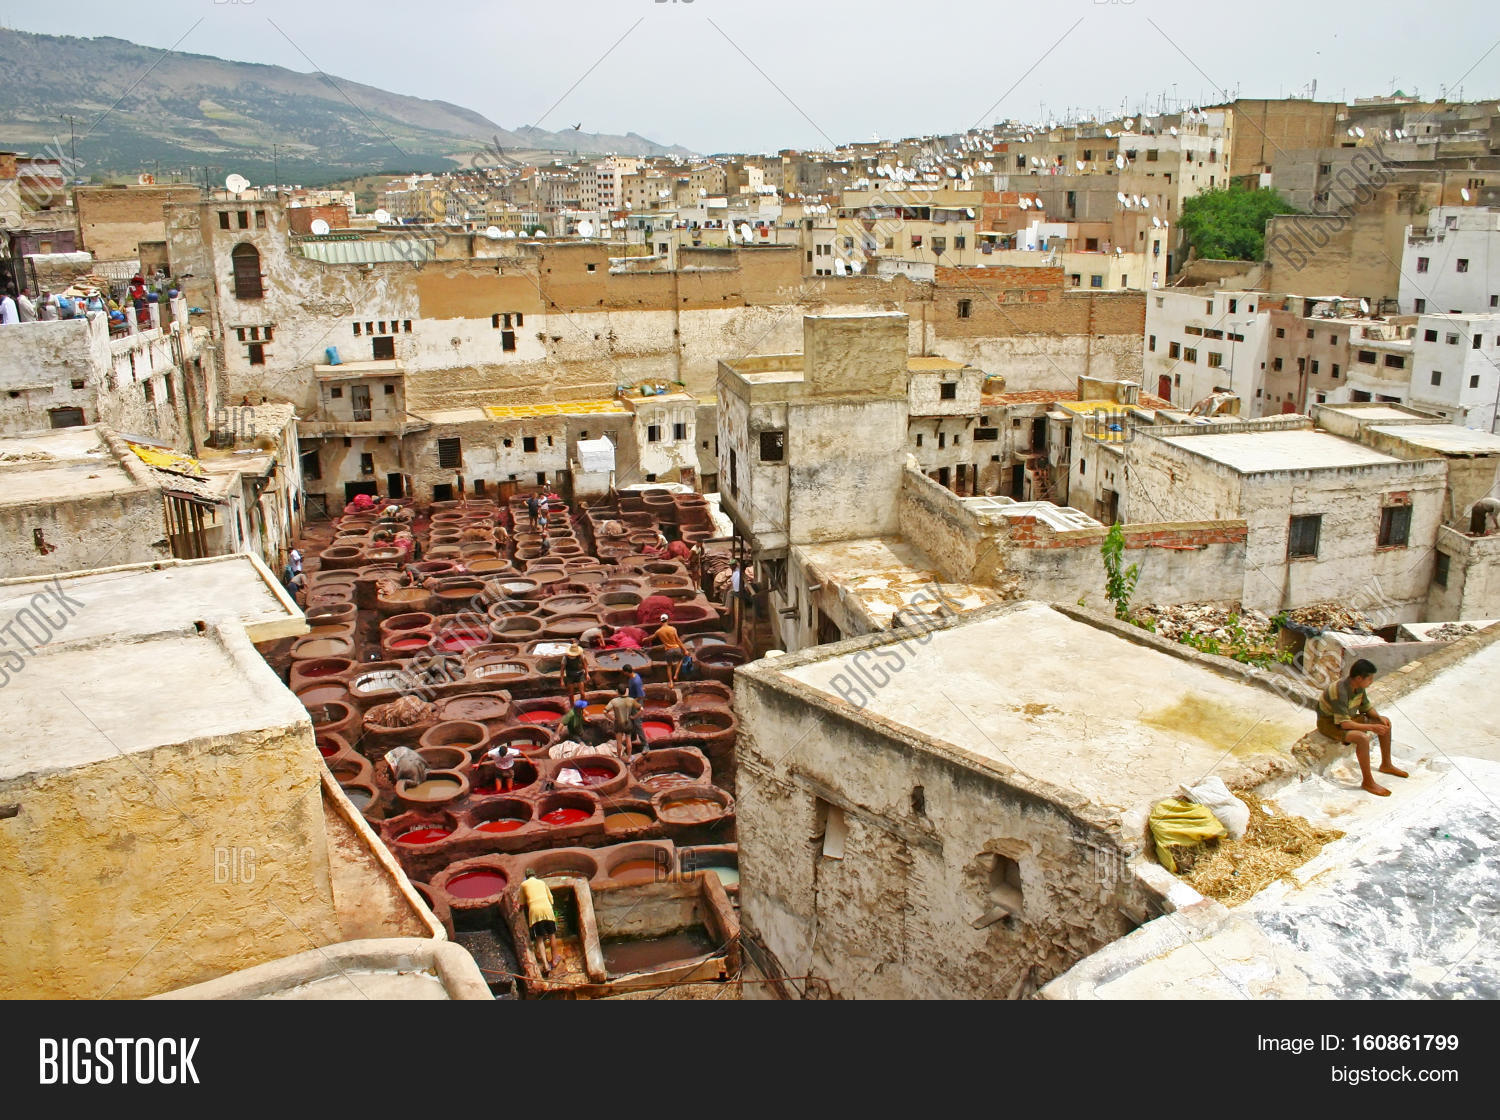 fez morocco may city skyline and view of rooftops and workers in